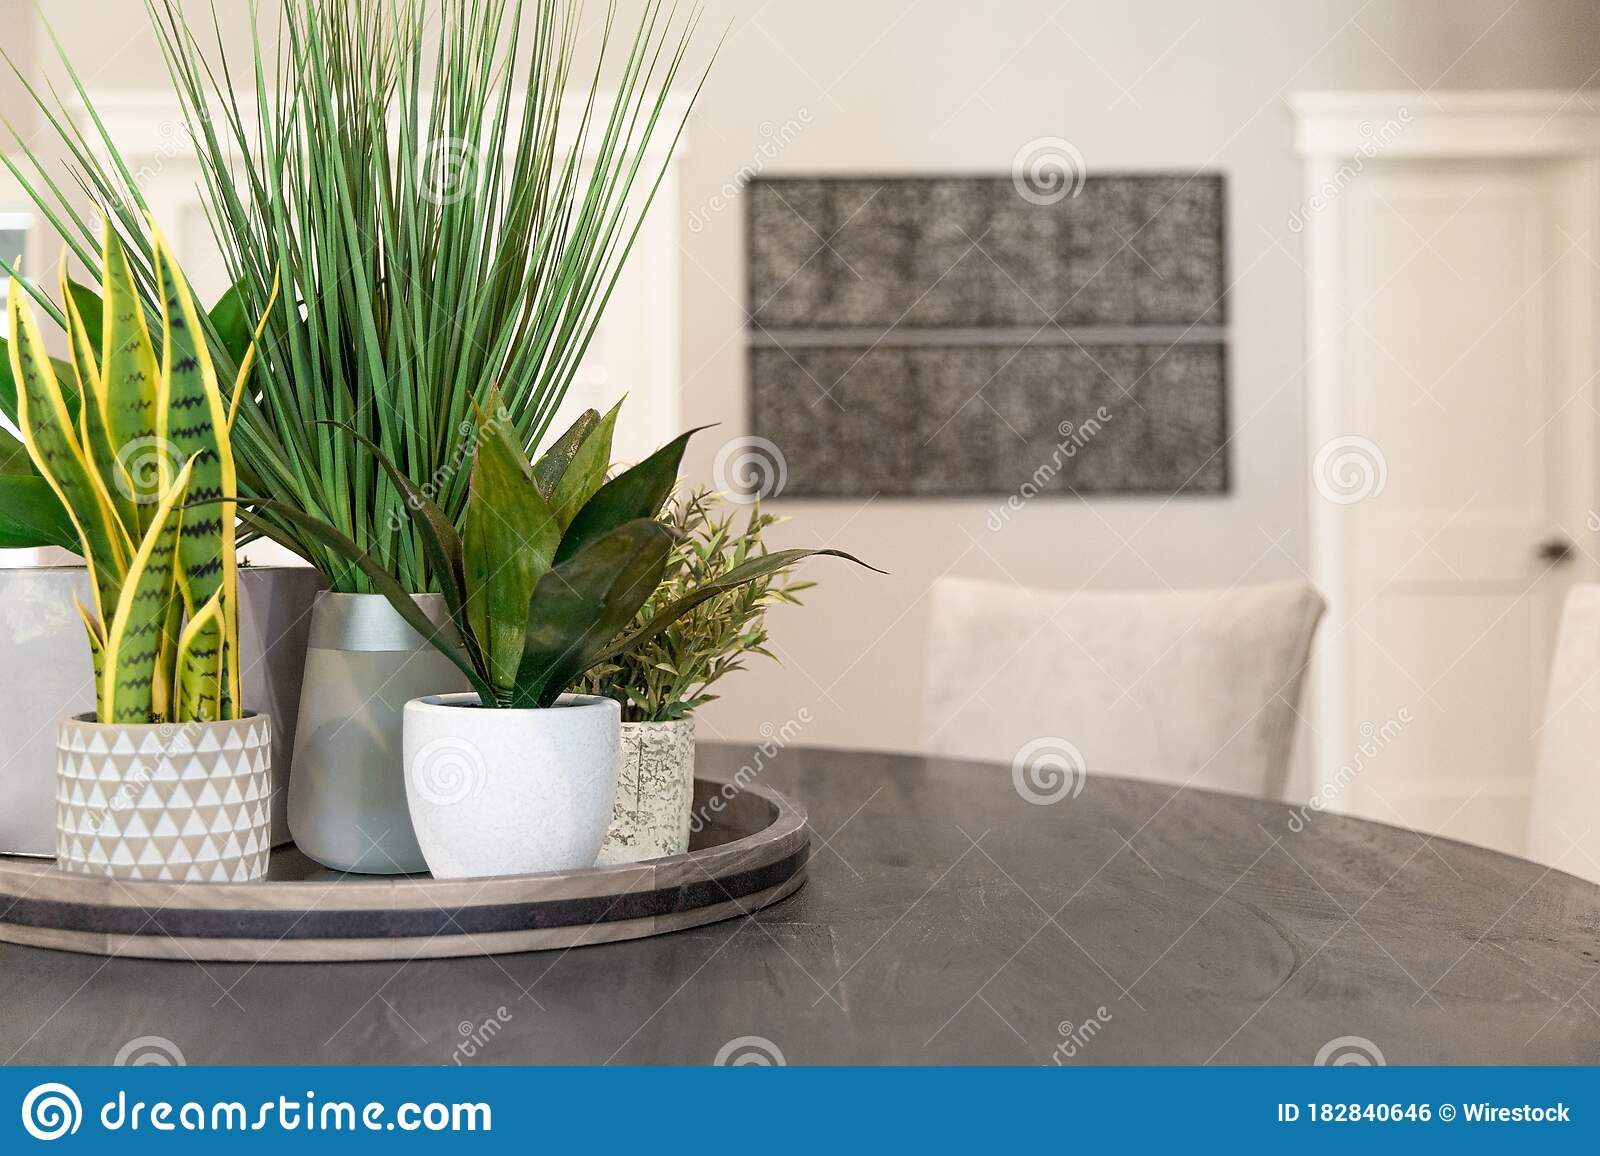 Modern Home Details Stock Photo Image Of Garden Table 182840646